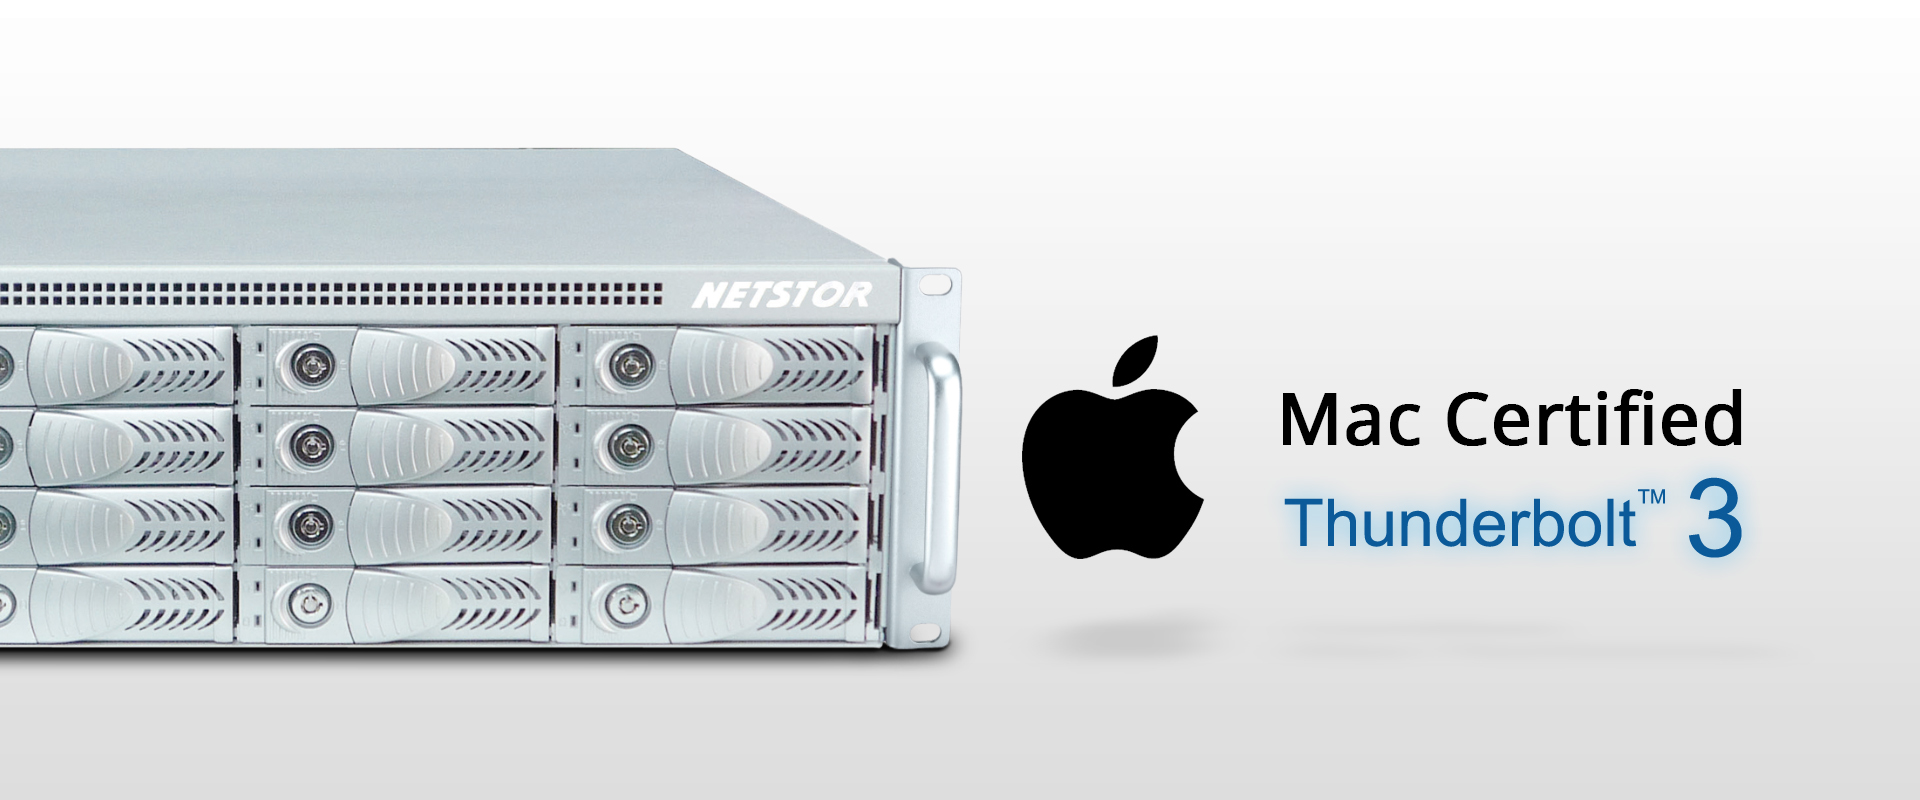 Netstor NA333TB3 has passed Apple's certification test process and is Mac certified.